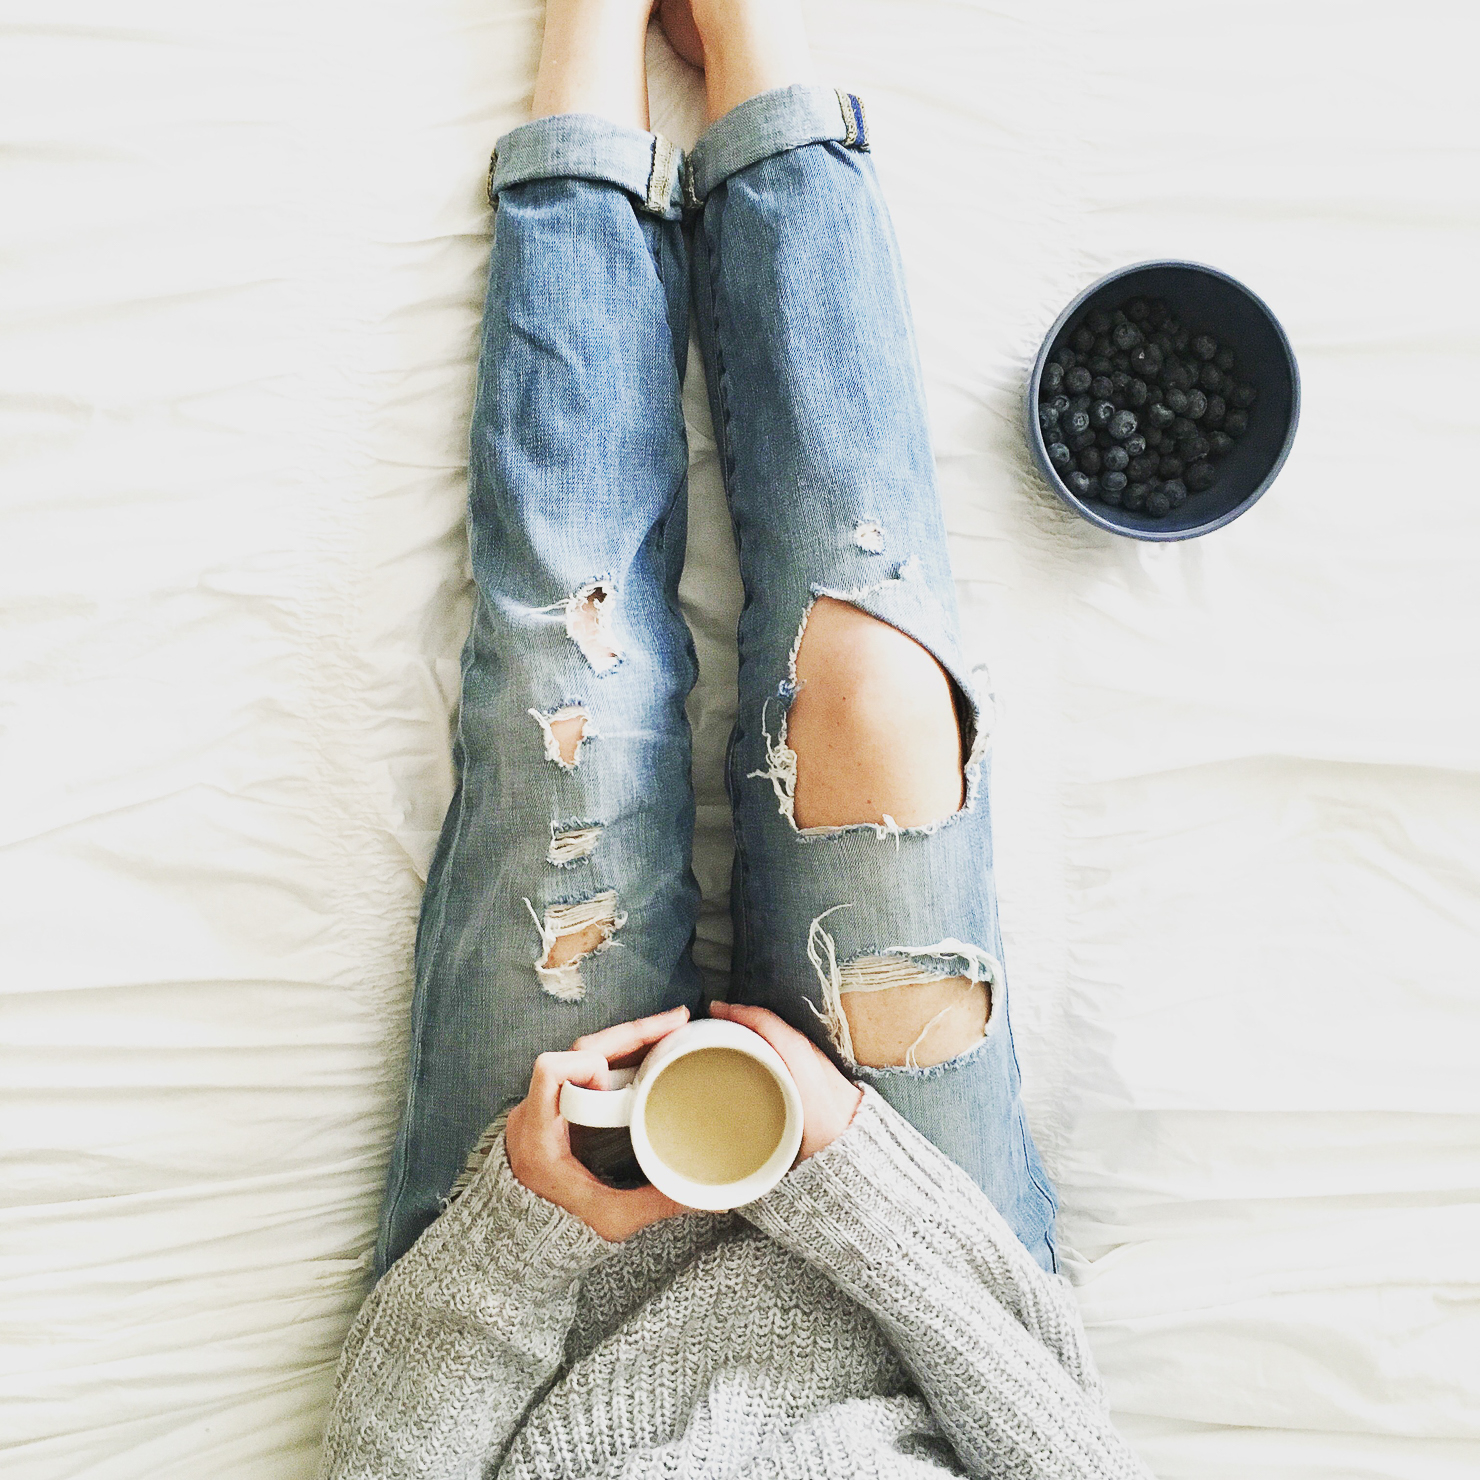 grey-sweater-distresse-boyfriend-jeans-coffee-in-bed-bowl-of-blueberries